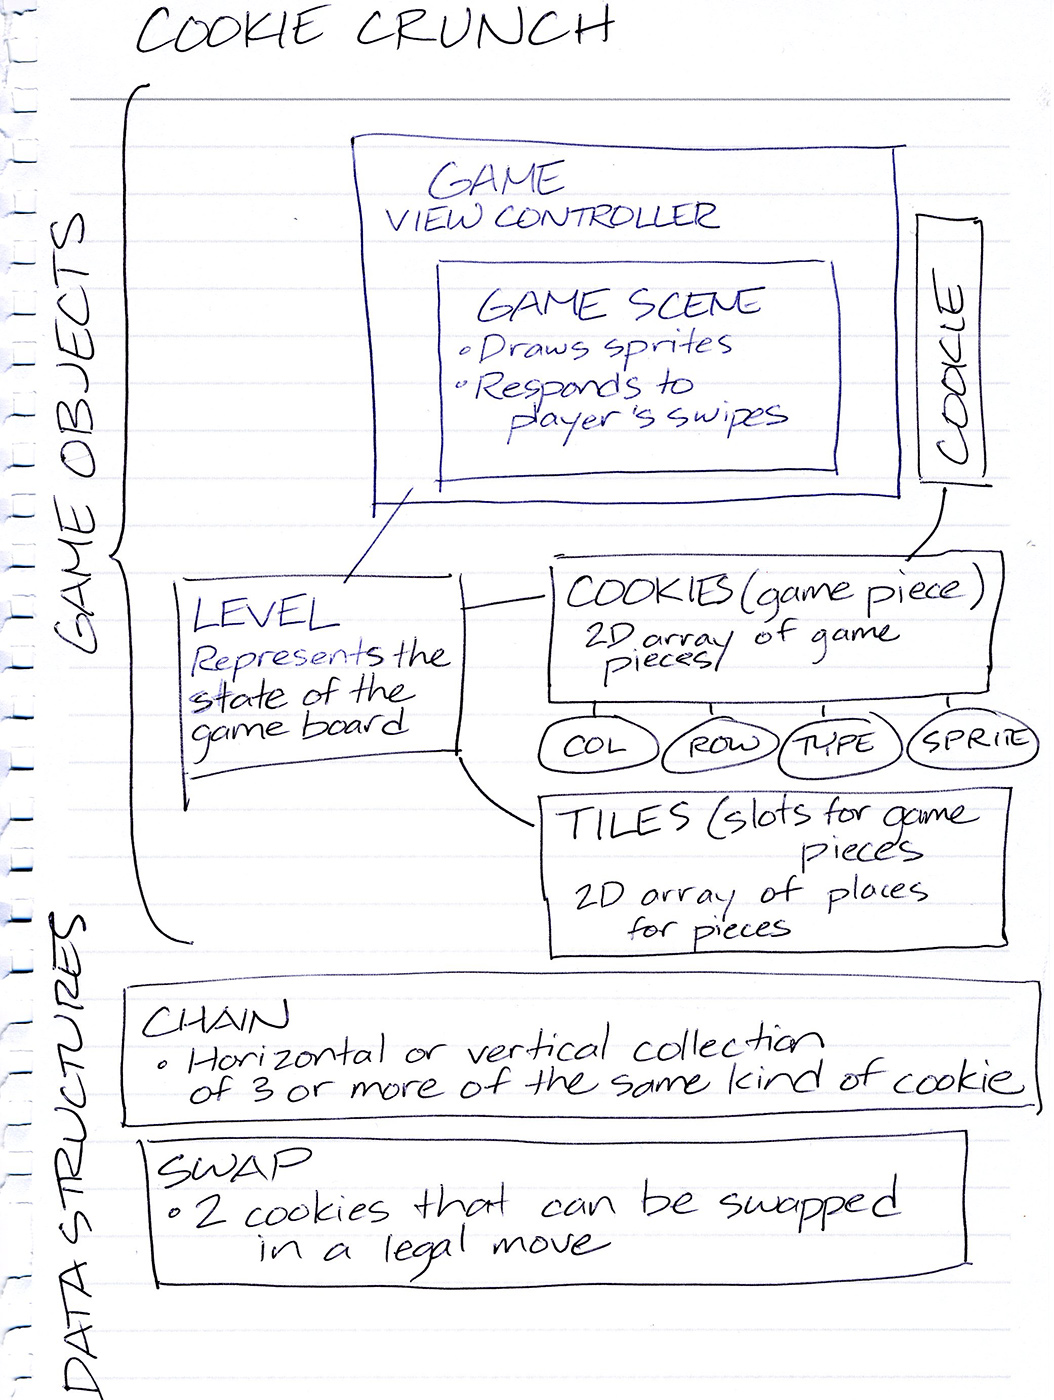 Scans of Joey deVilla's notes on the structure and organization of the Cookie Crunch app.